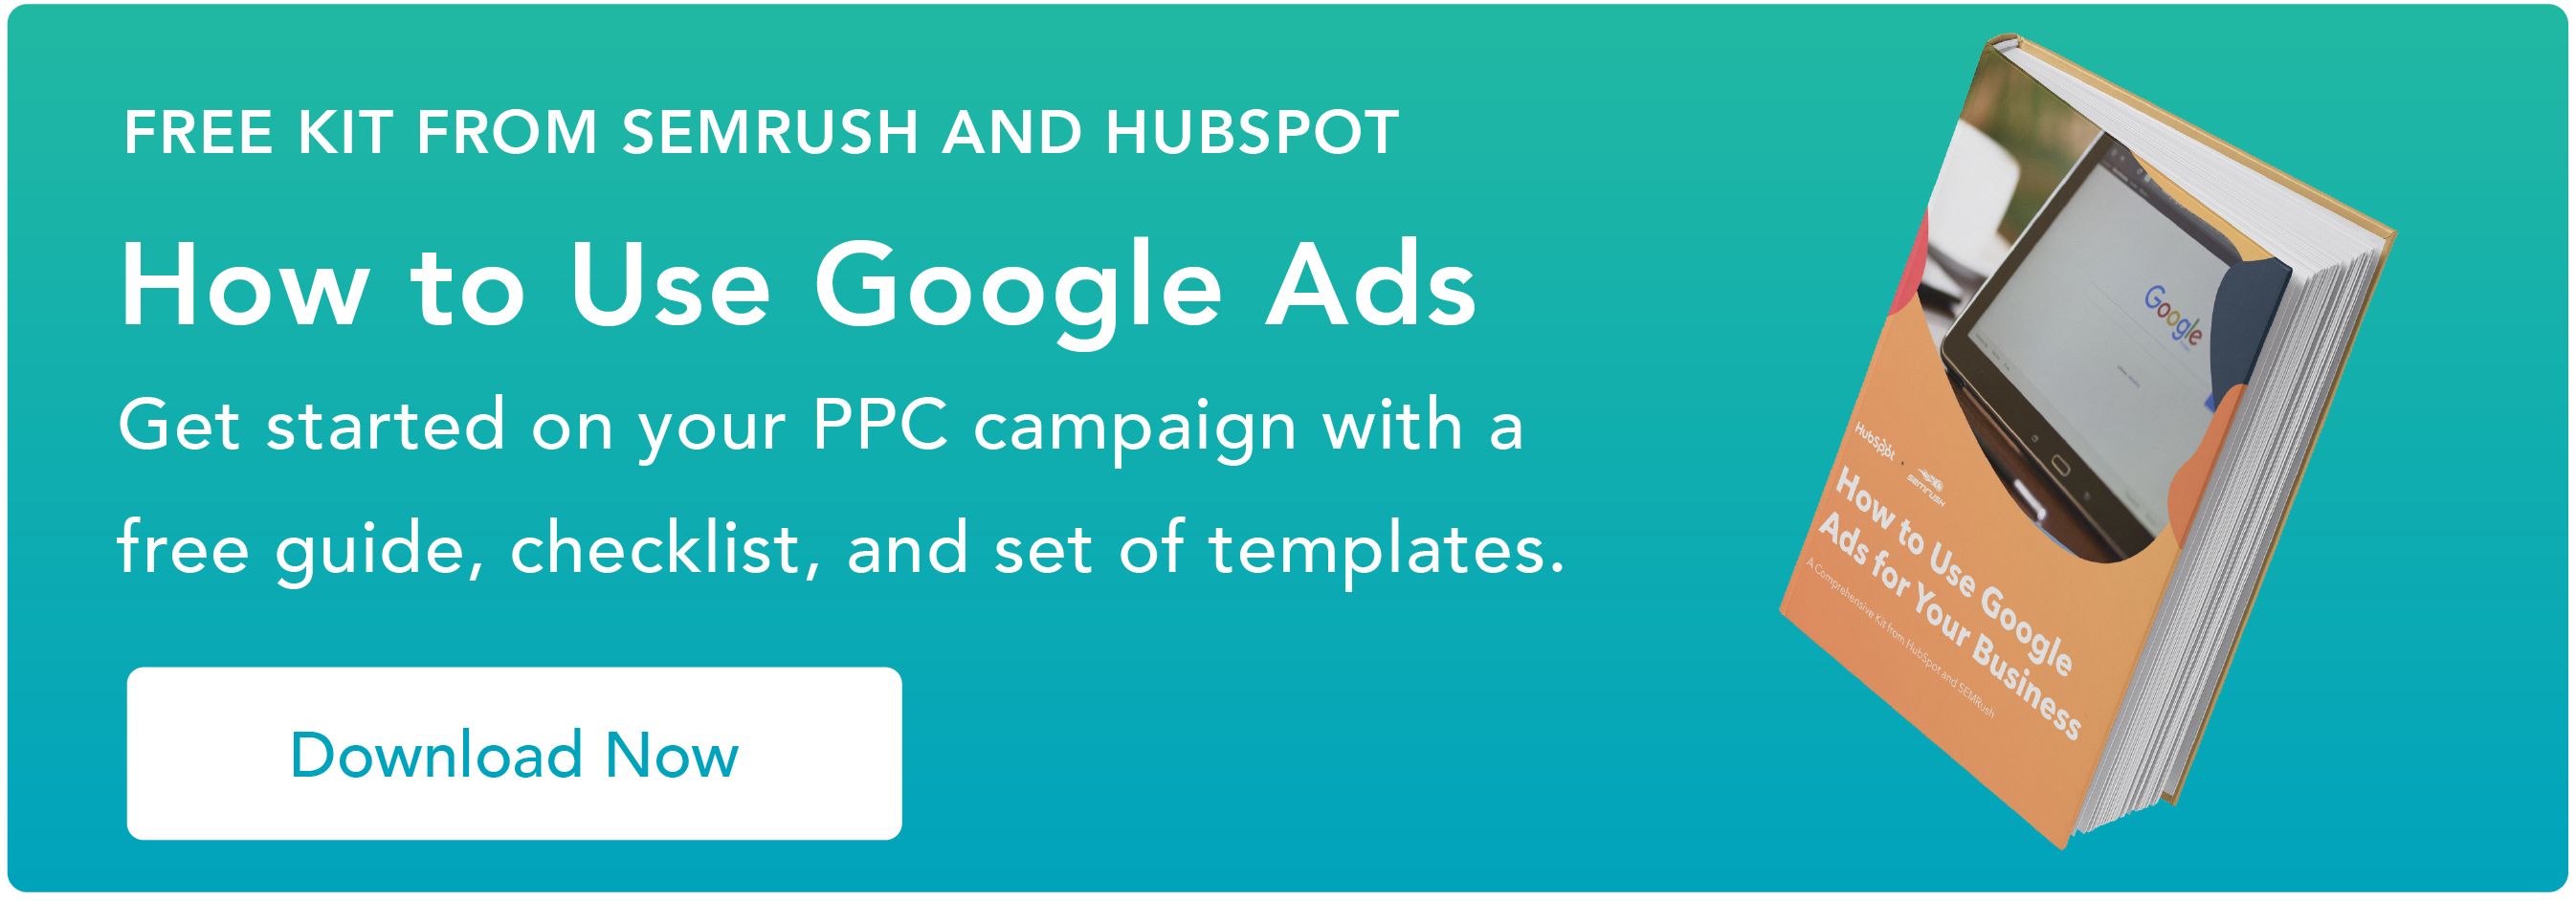 How to Get Started With Paid Search [Free Guide]